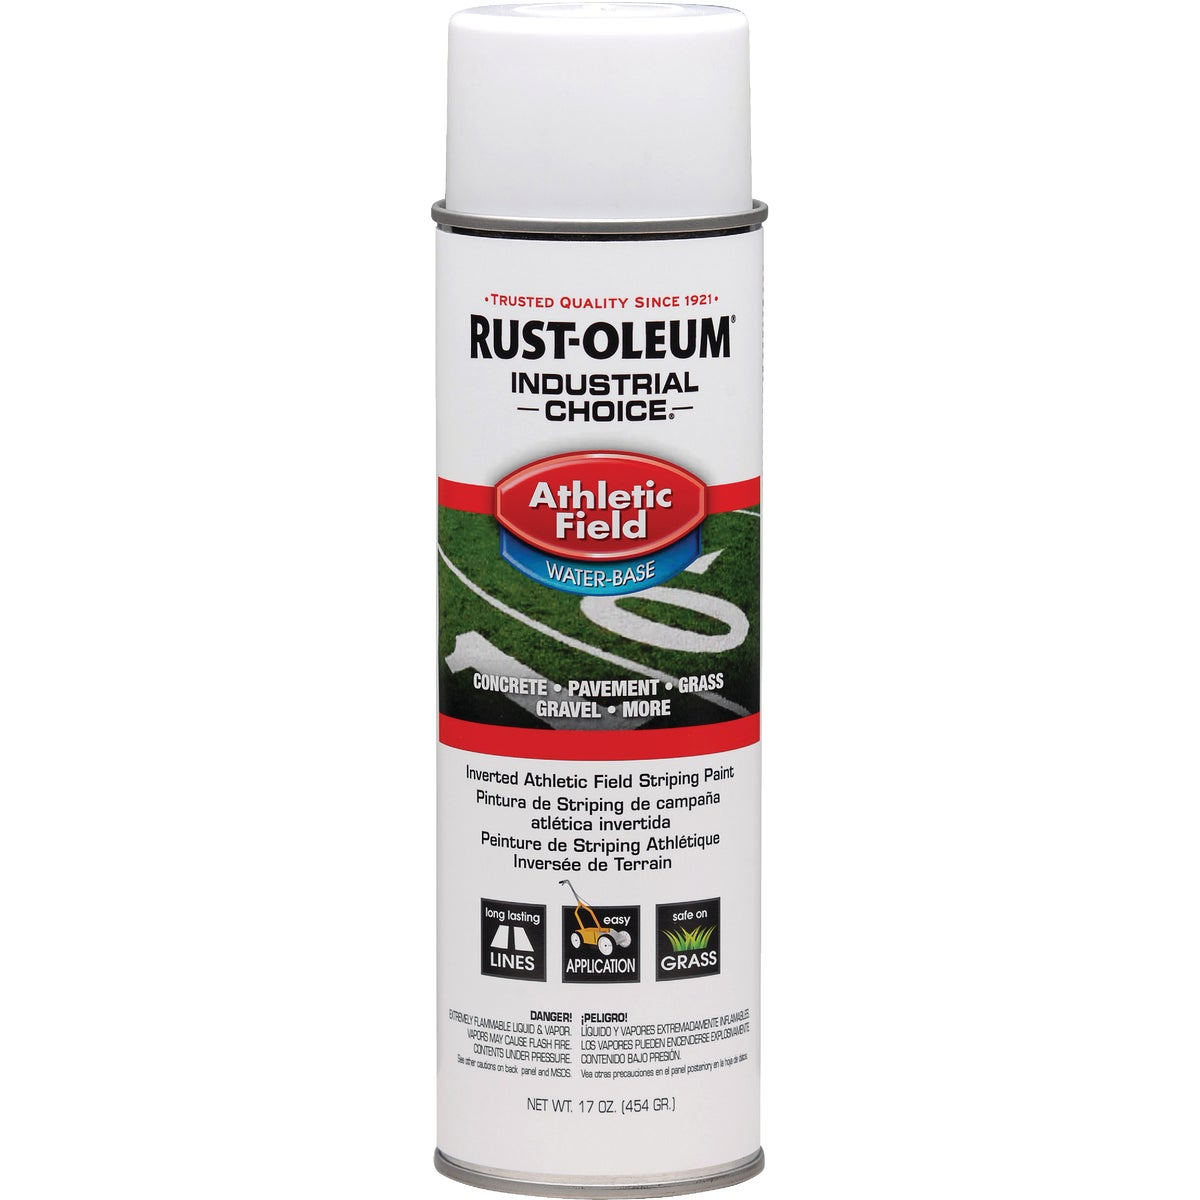 Rust Oleum WHT FIELD STRIPING PAINT 206043